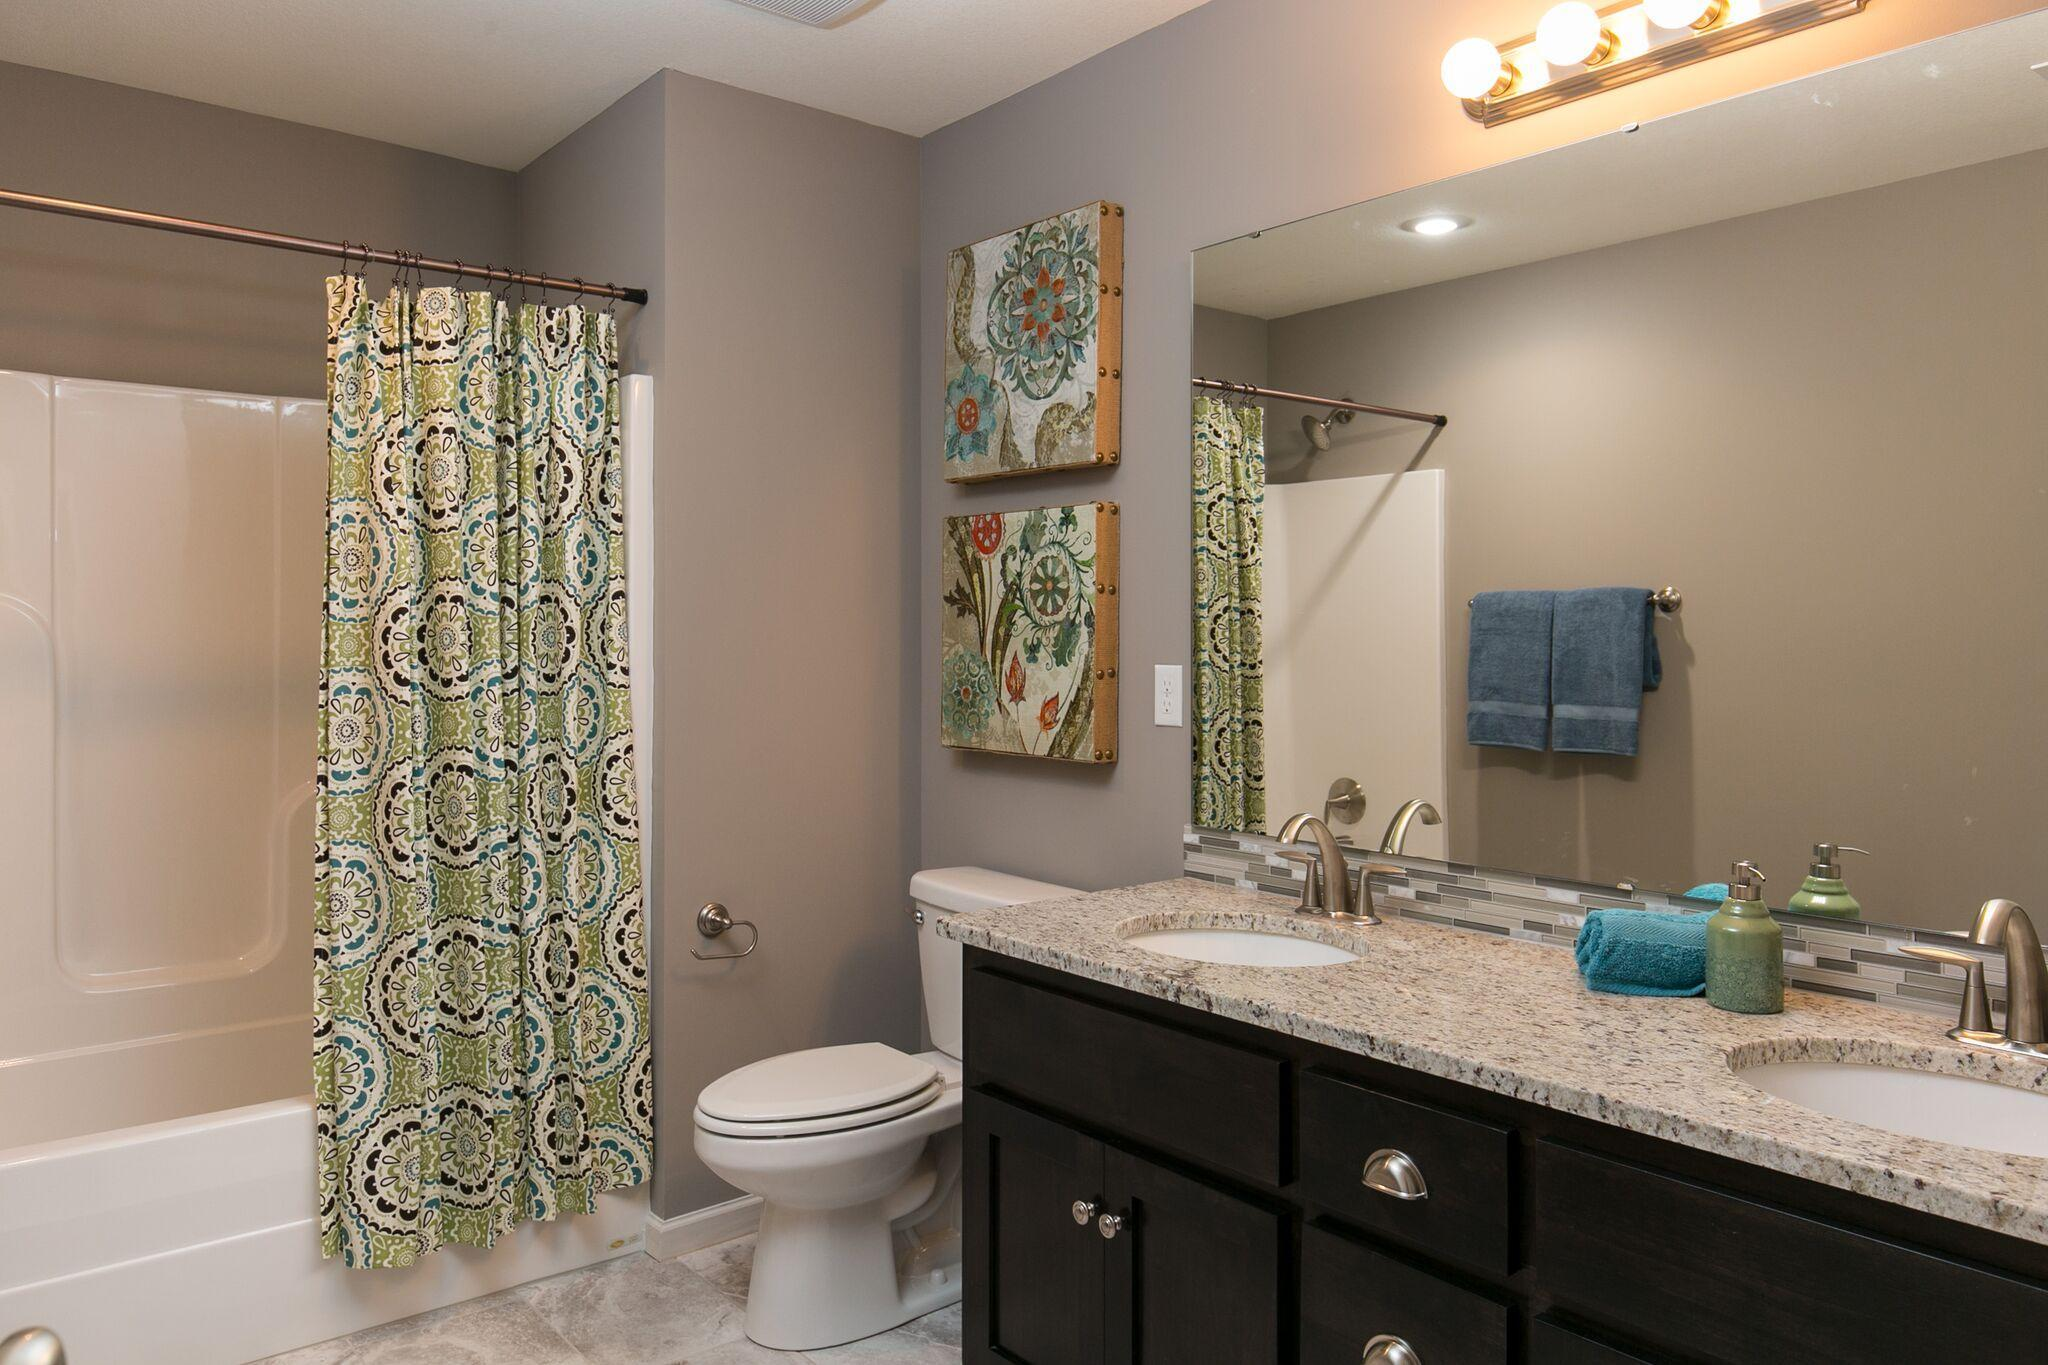 Bathroom featured in the Bayfield By Summit Homes in Kansas City, MO